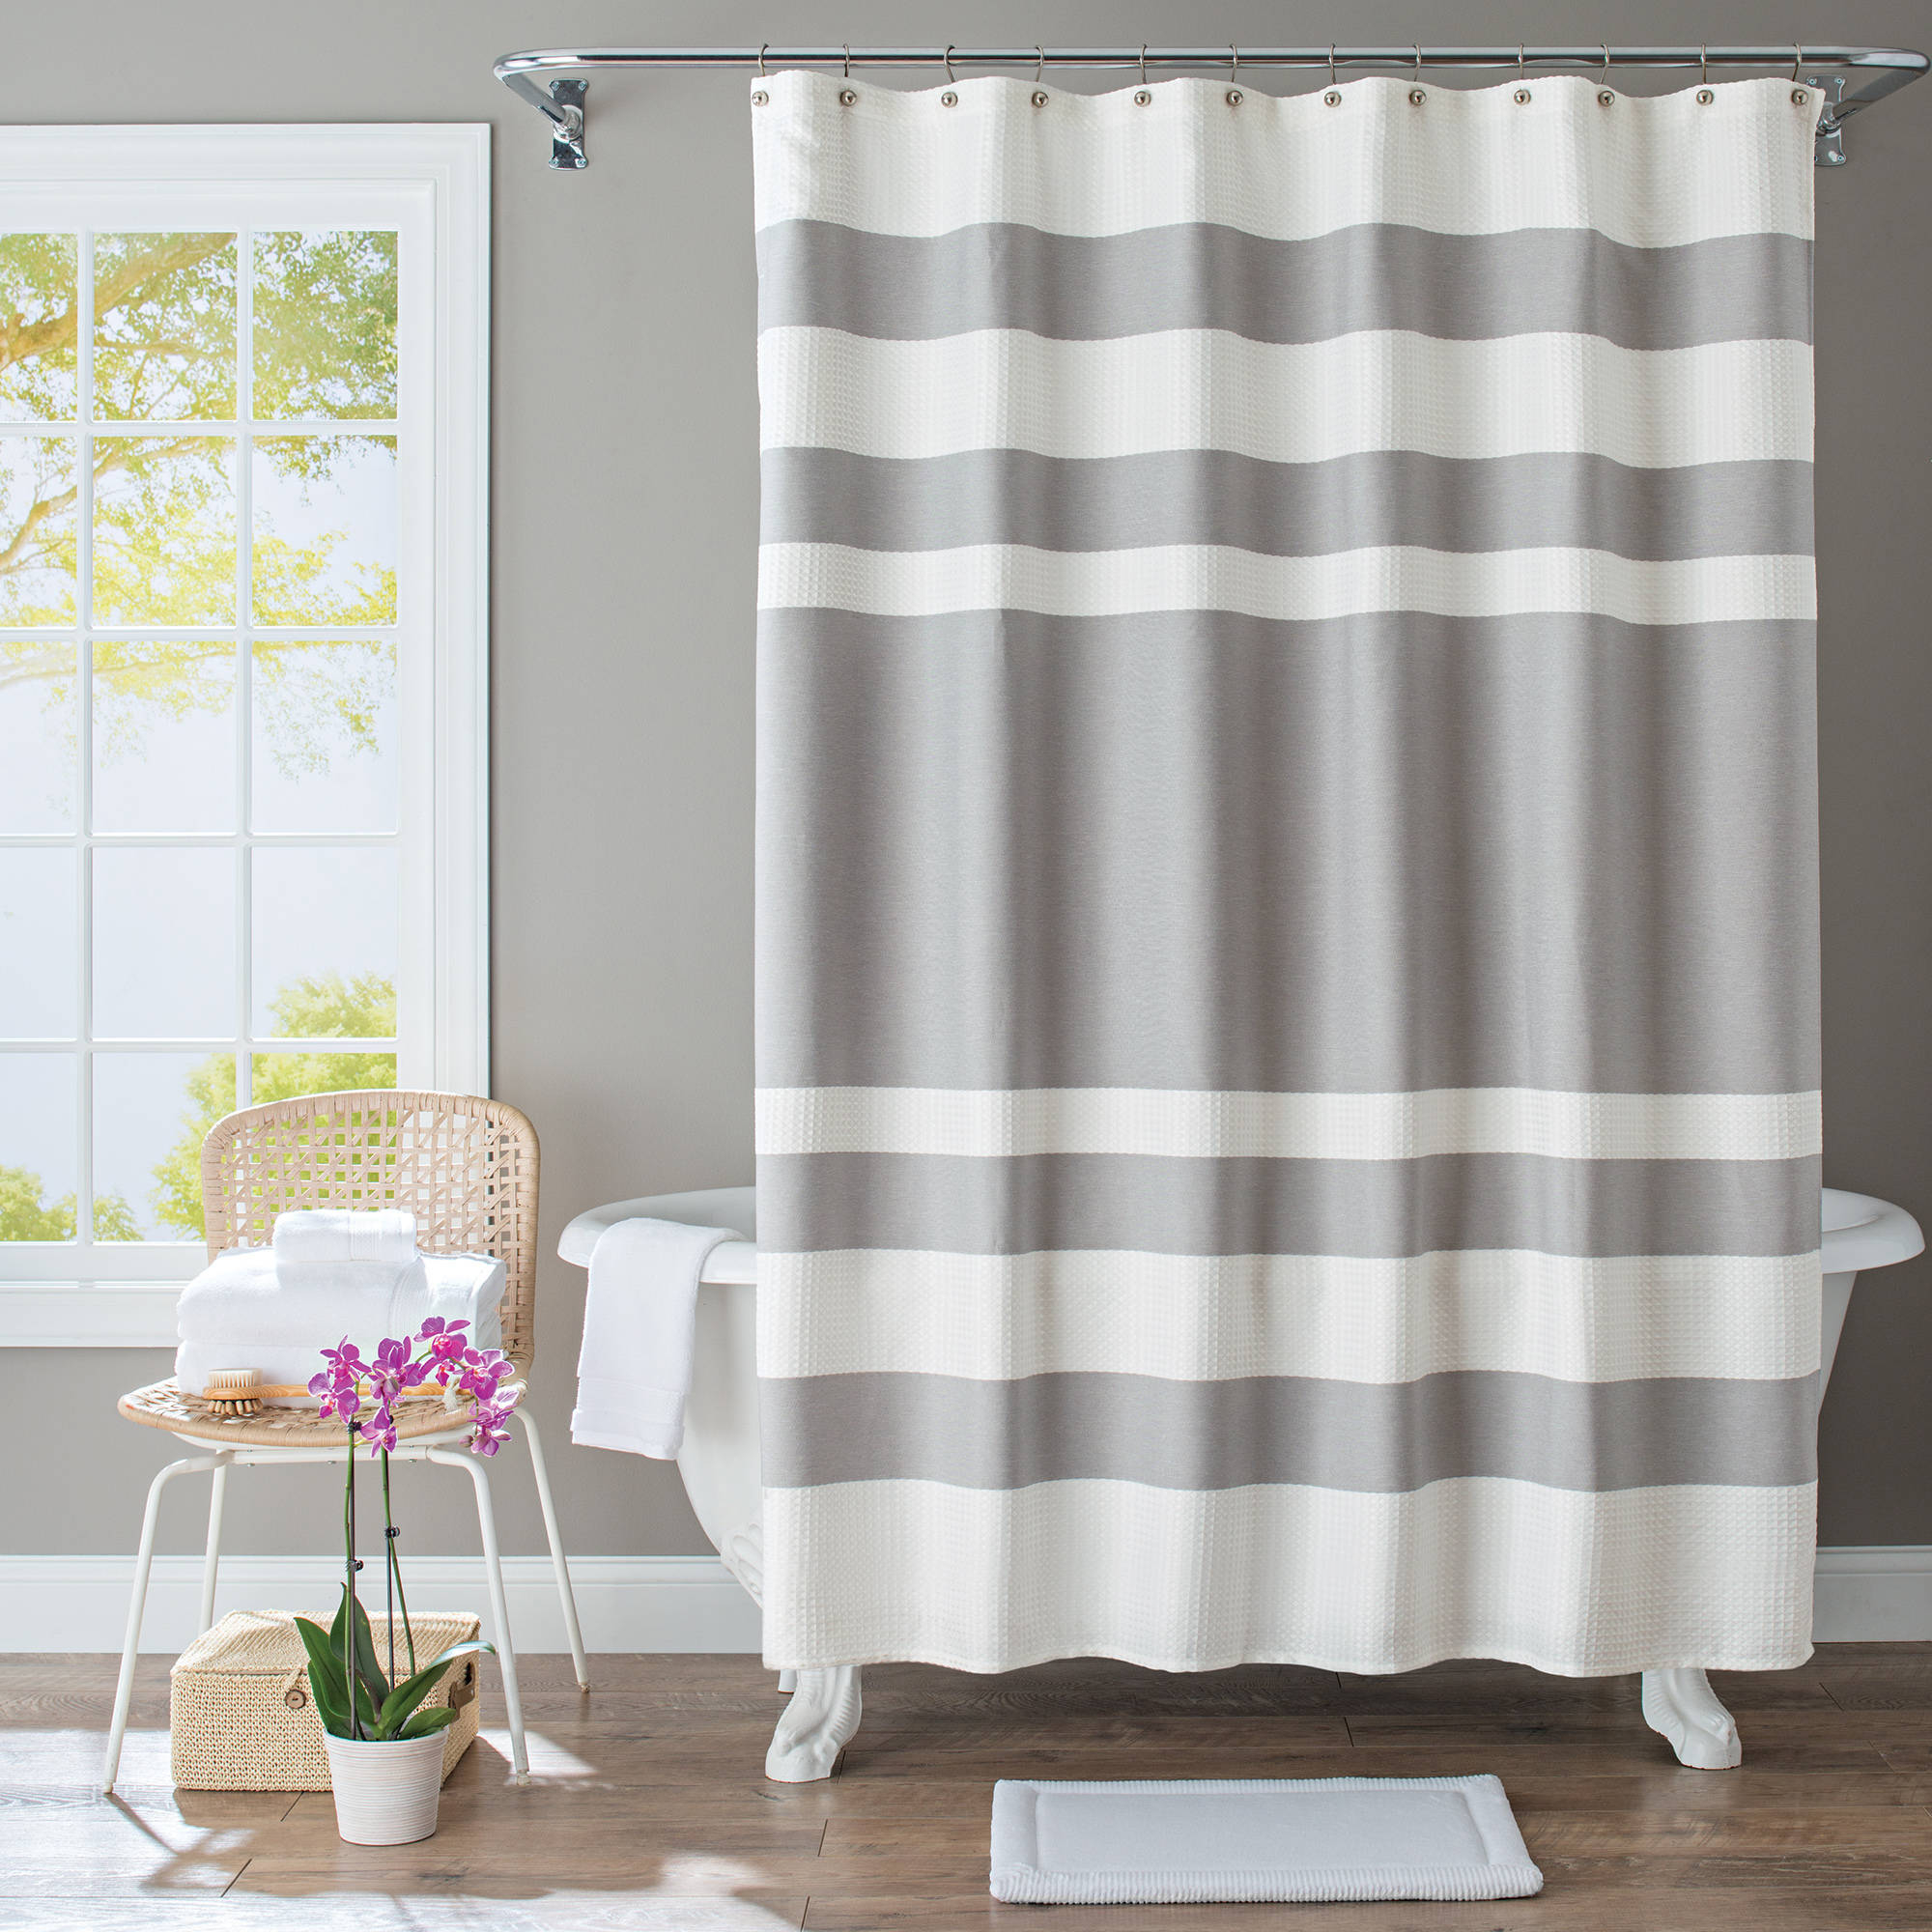 Gray And White Striped Shower Curtain Curtains Drapes